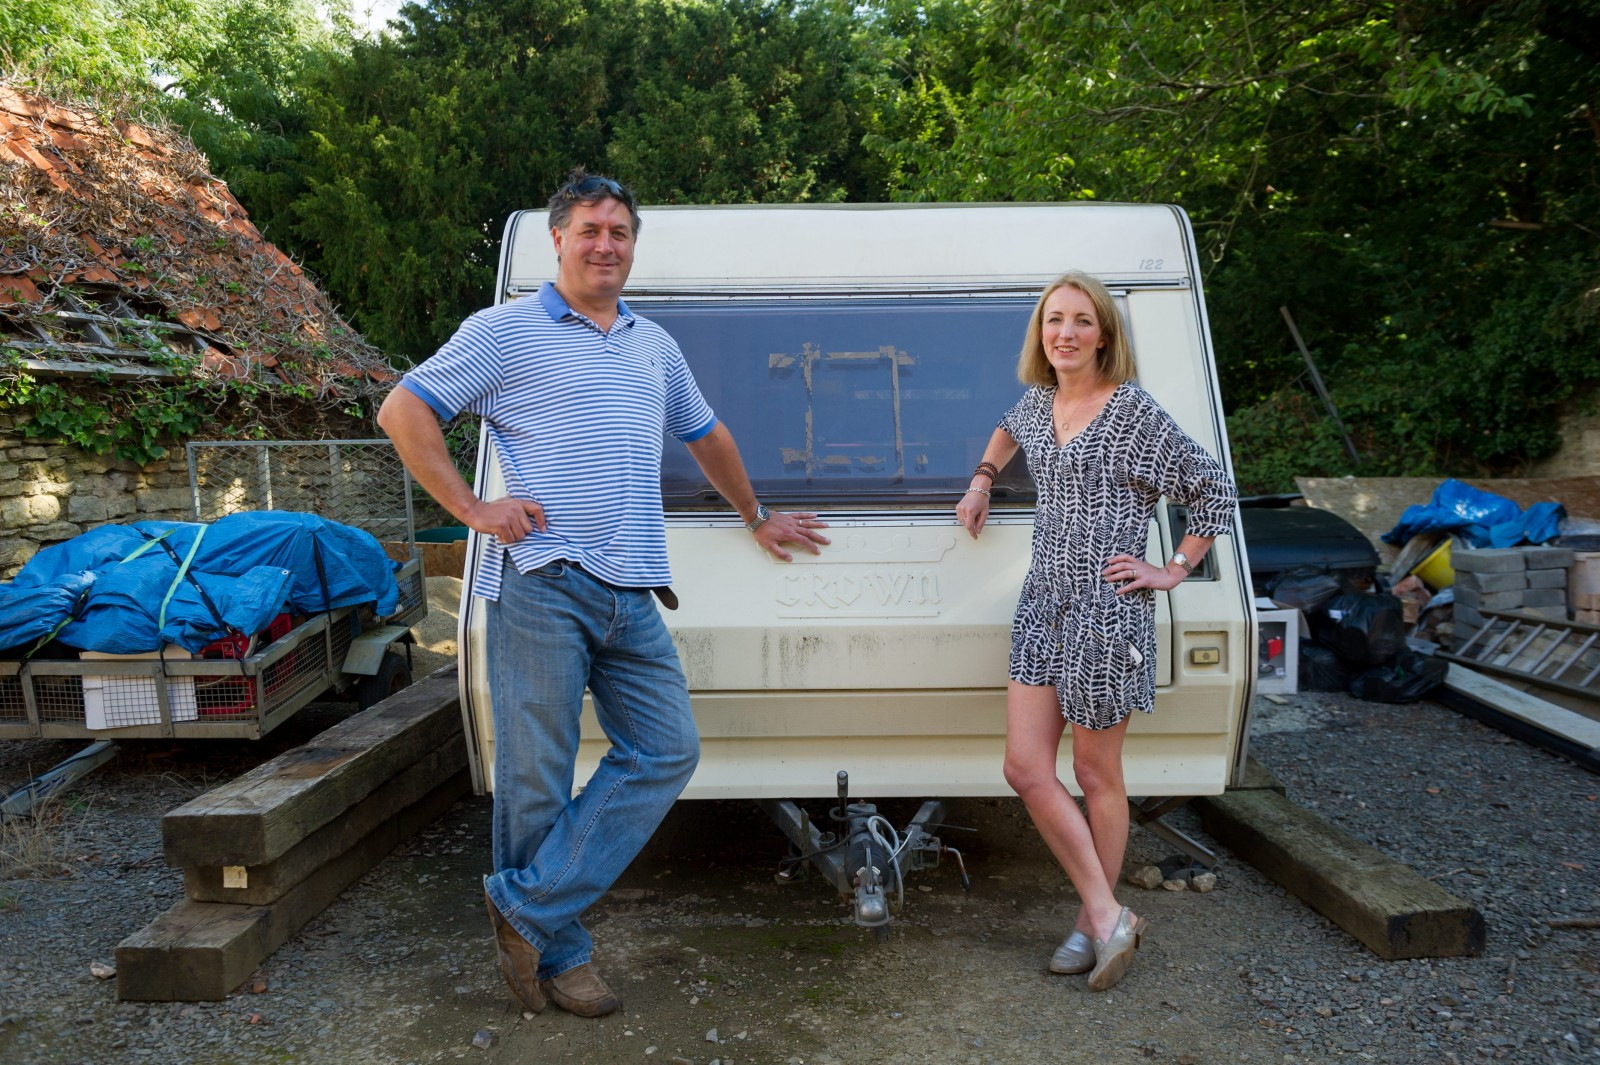 Find out why this old caravan has got everyone talking – and spending their cash